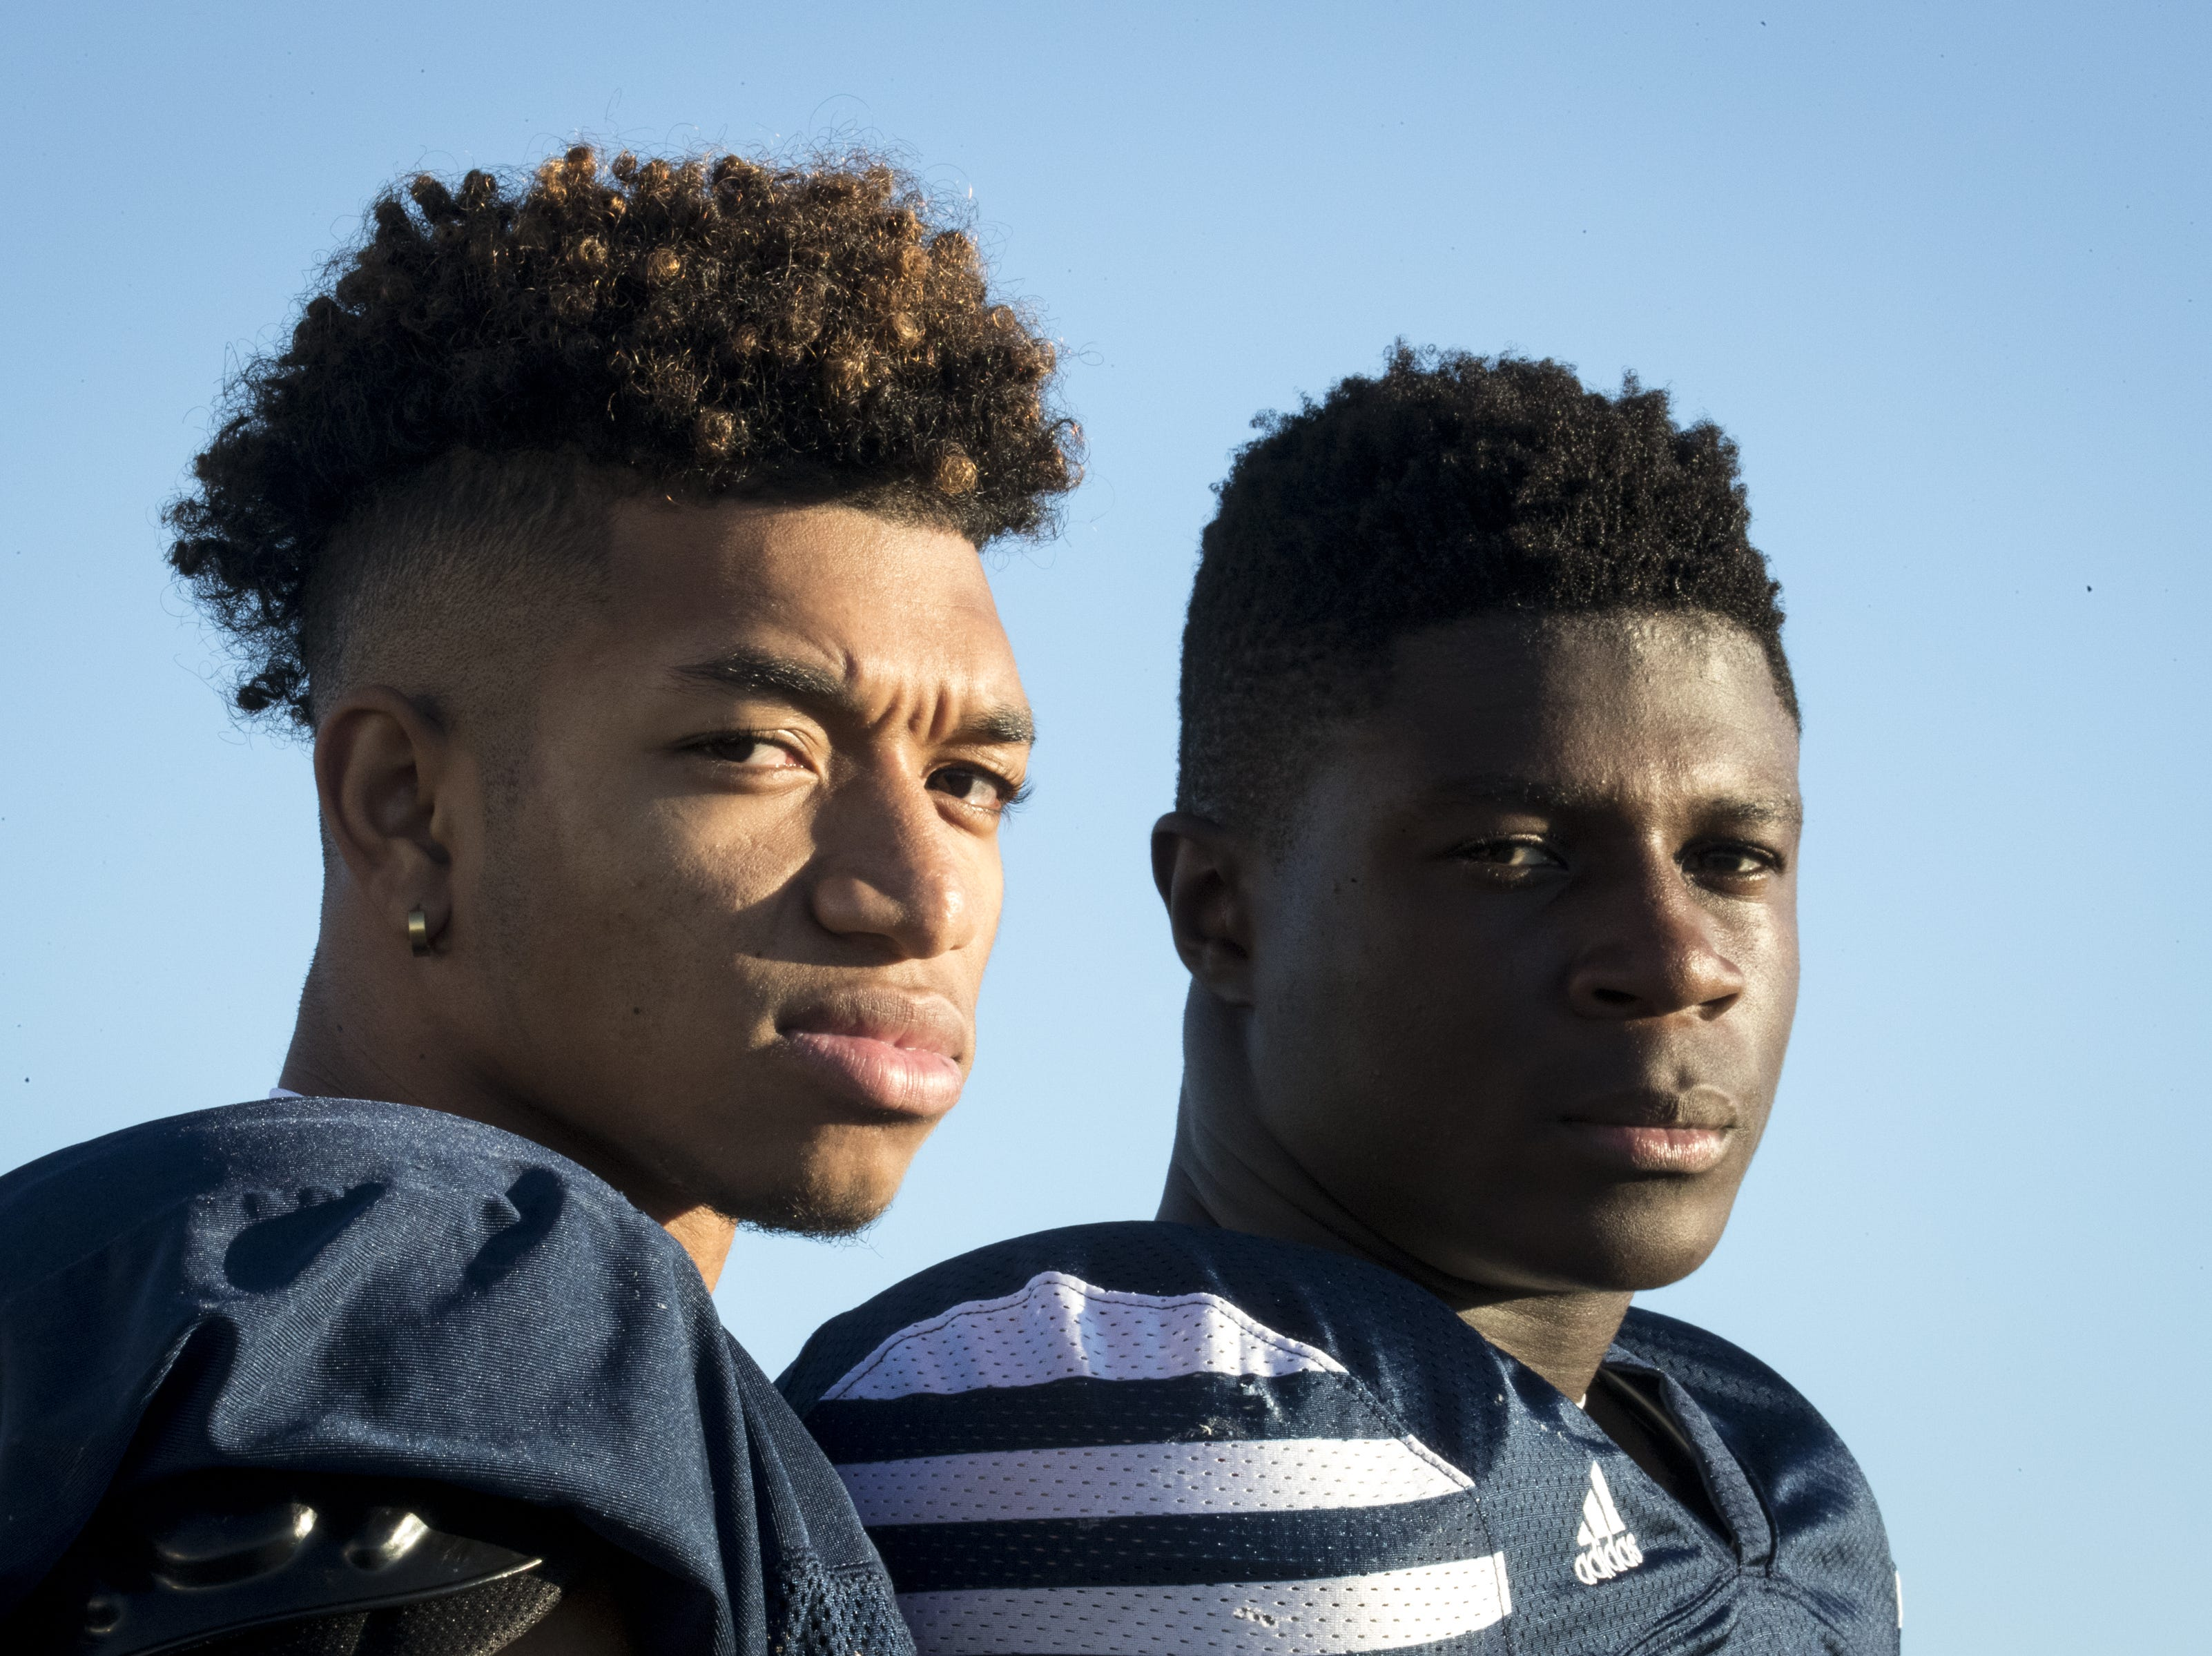 Kaleb Covington (left) and Amelec Juntunen during football practice, October 9, 2018, at Pinnacle High School, Phoenix.